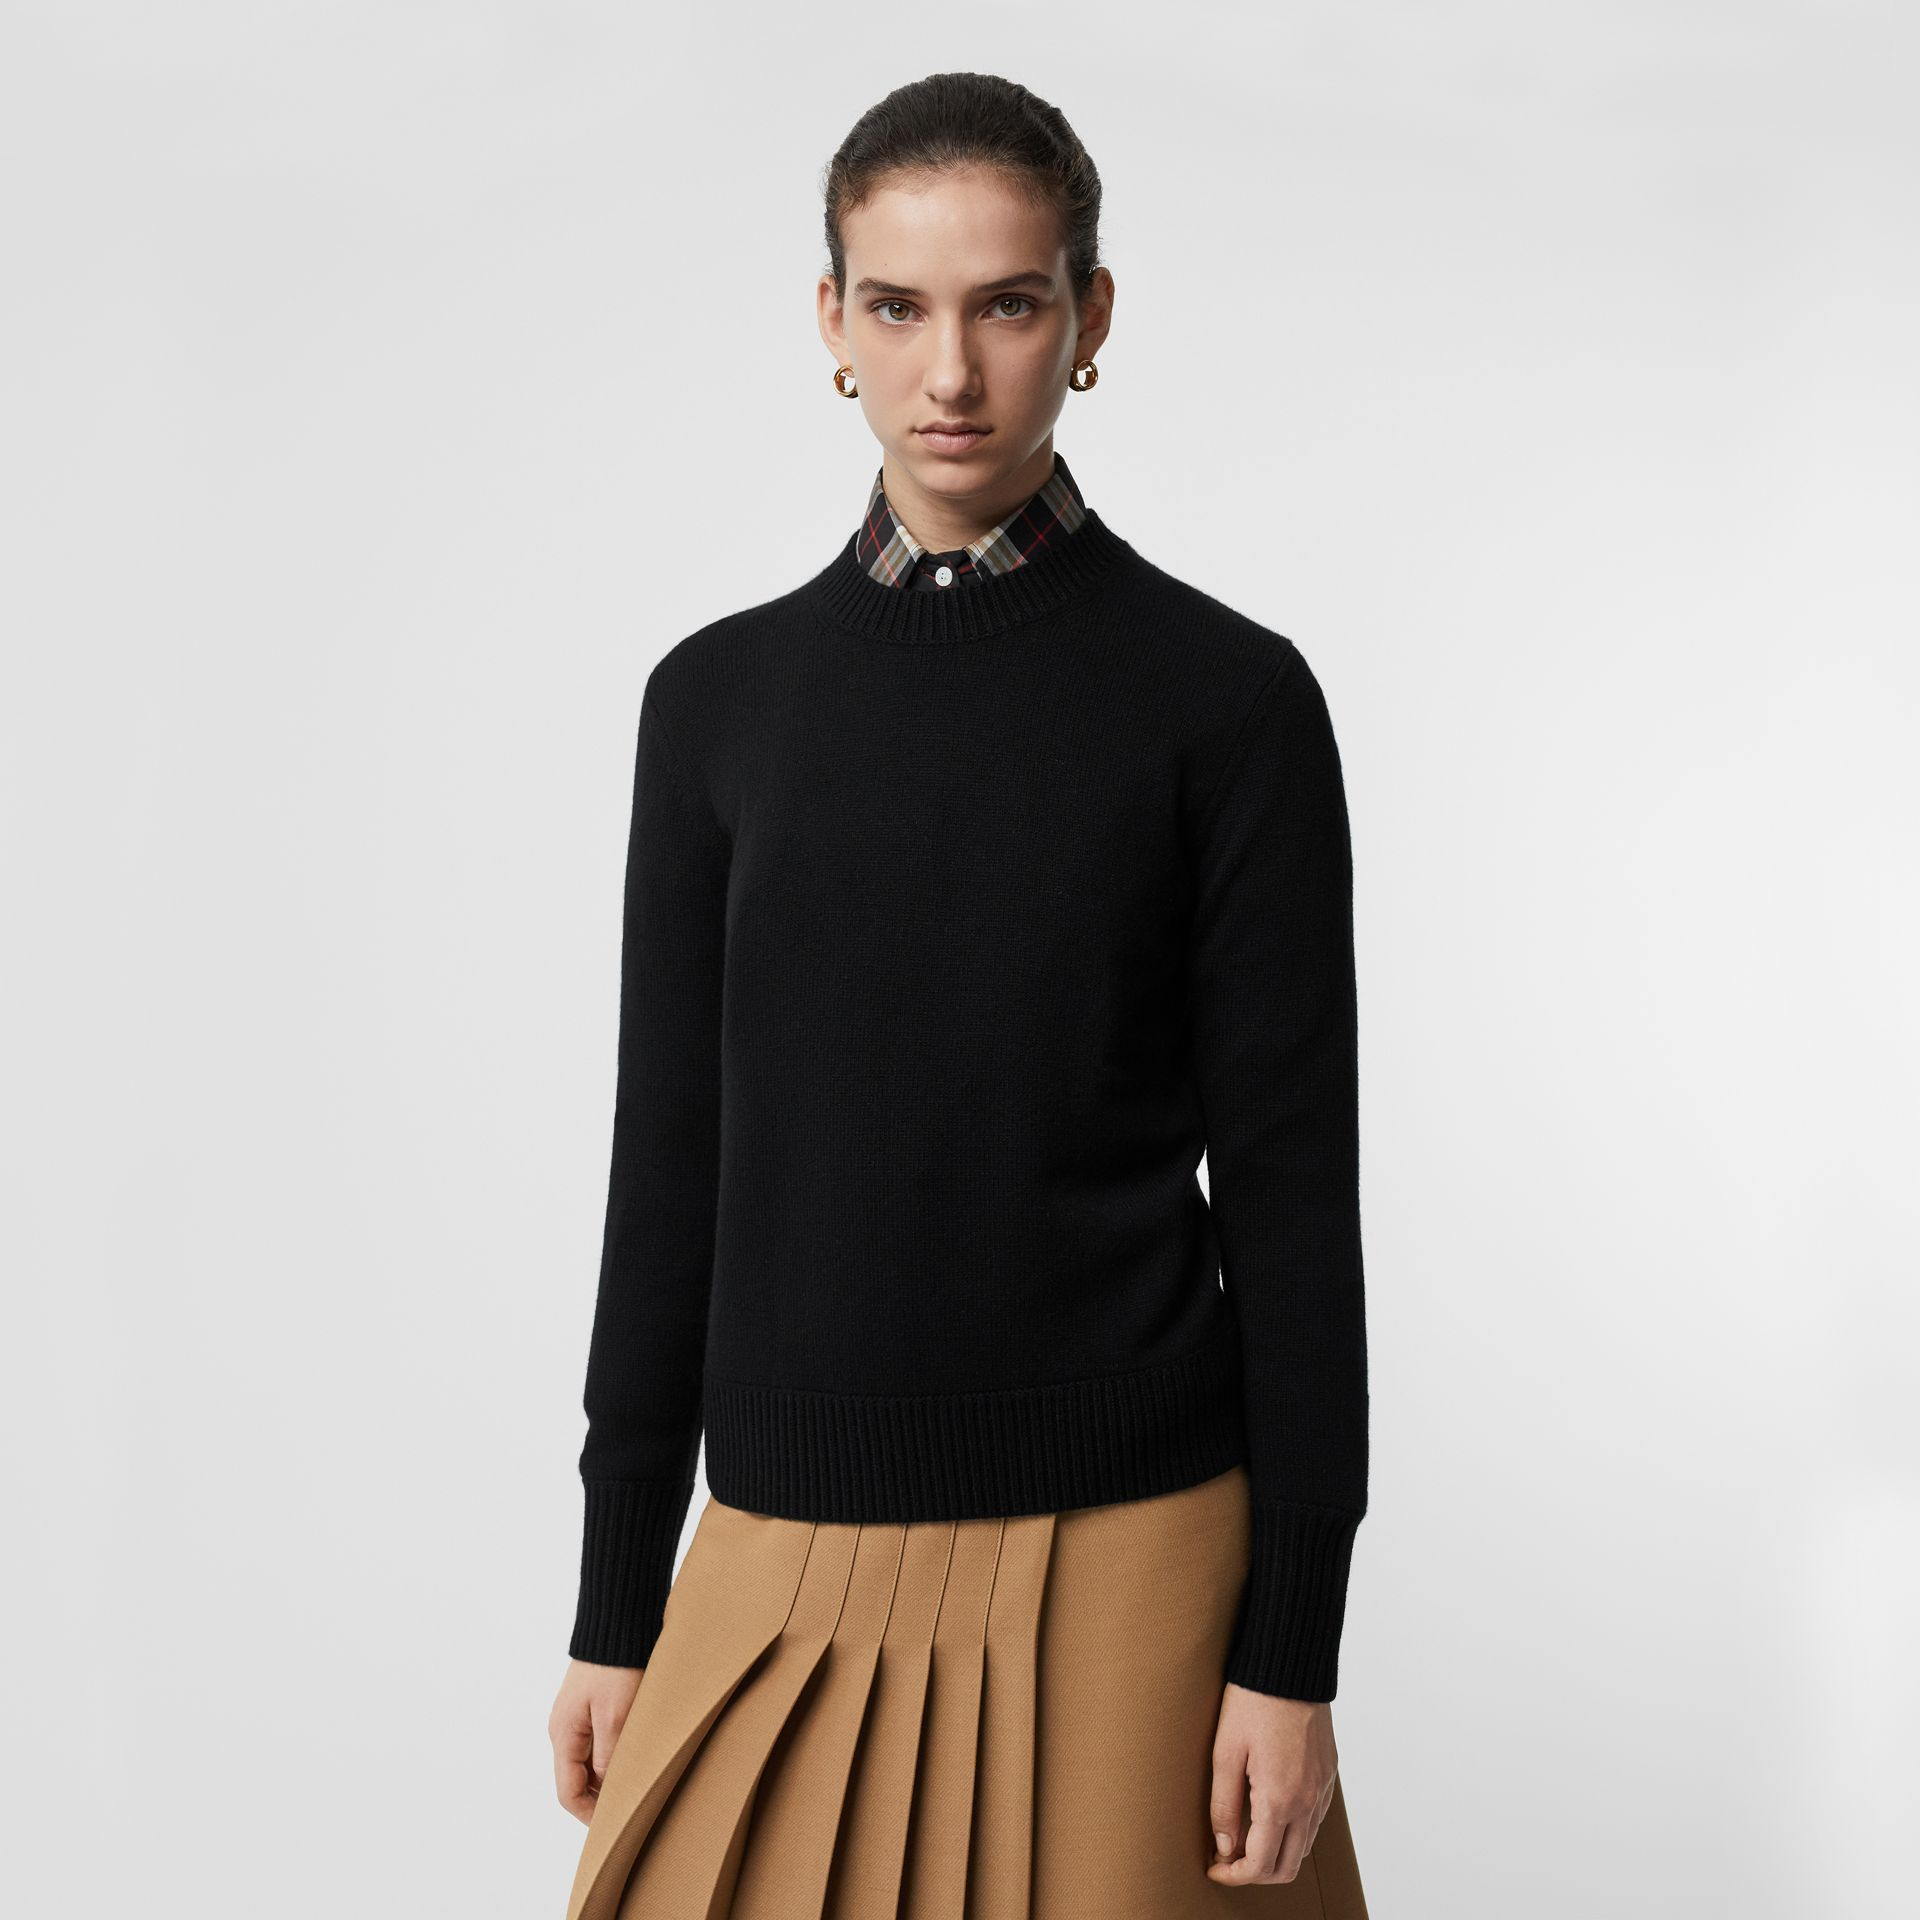 Embroidered Crest Cashmere Sweater in Black - Women | Burberry - gallery image 2